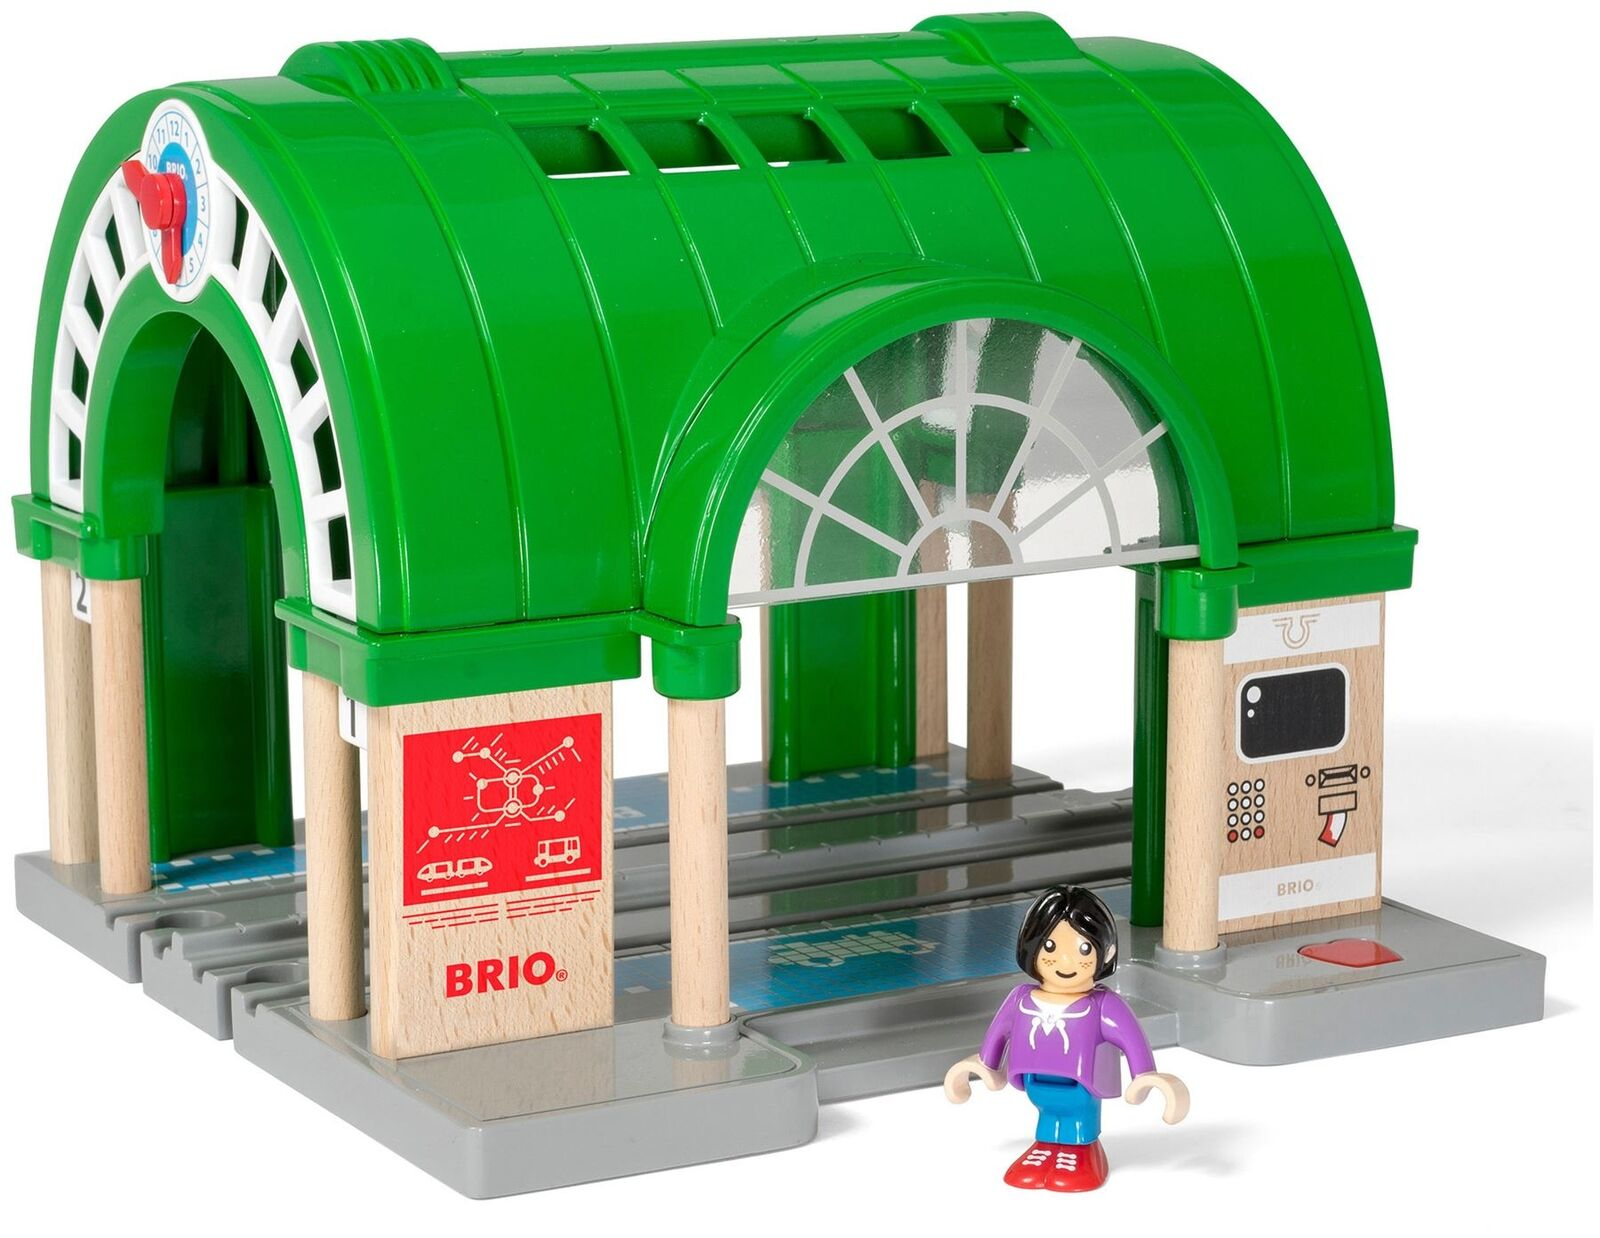 Brio CENTRAL CENTRAL CENTRAL TRAIN STATION Wooden Toy Train BN aa8d6b